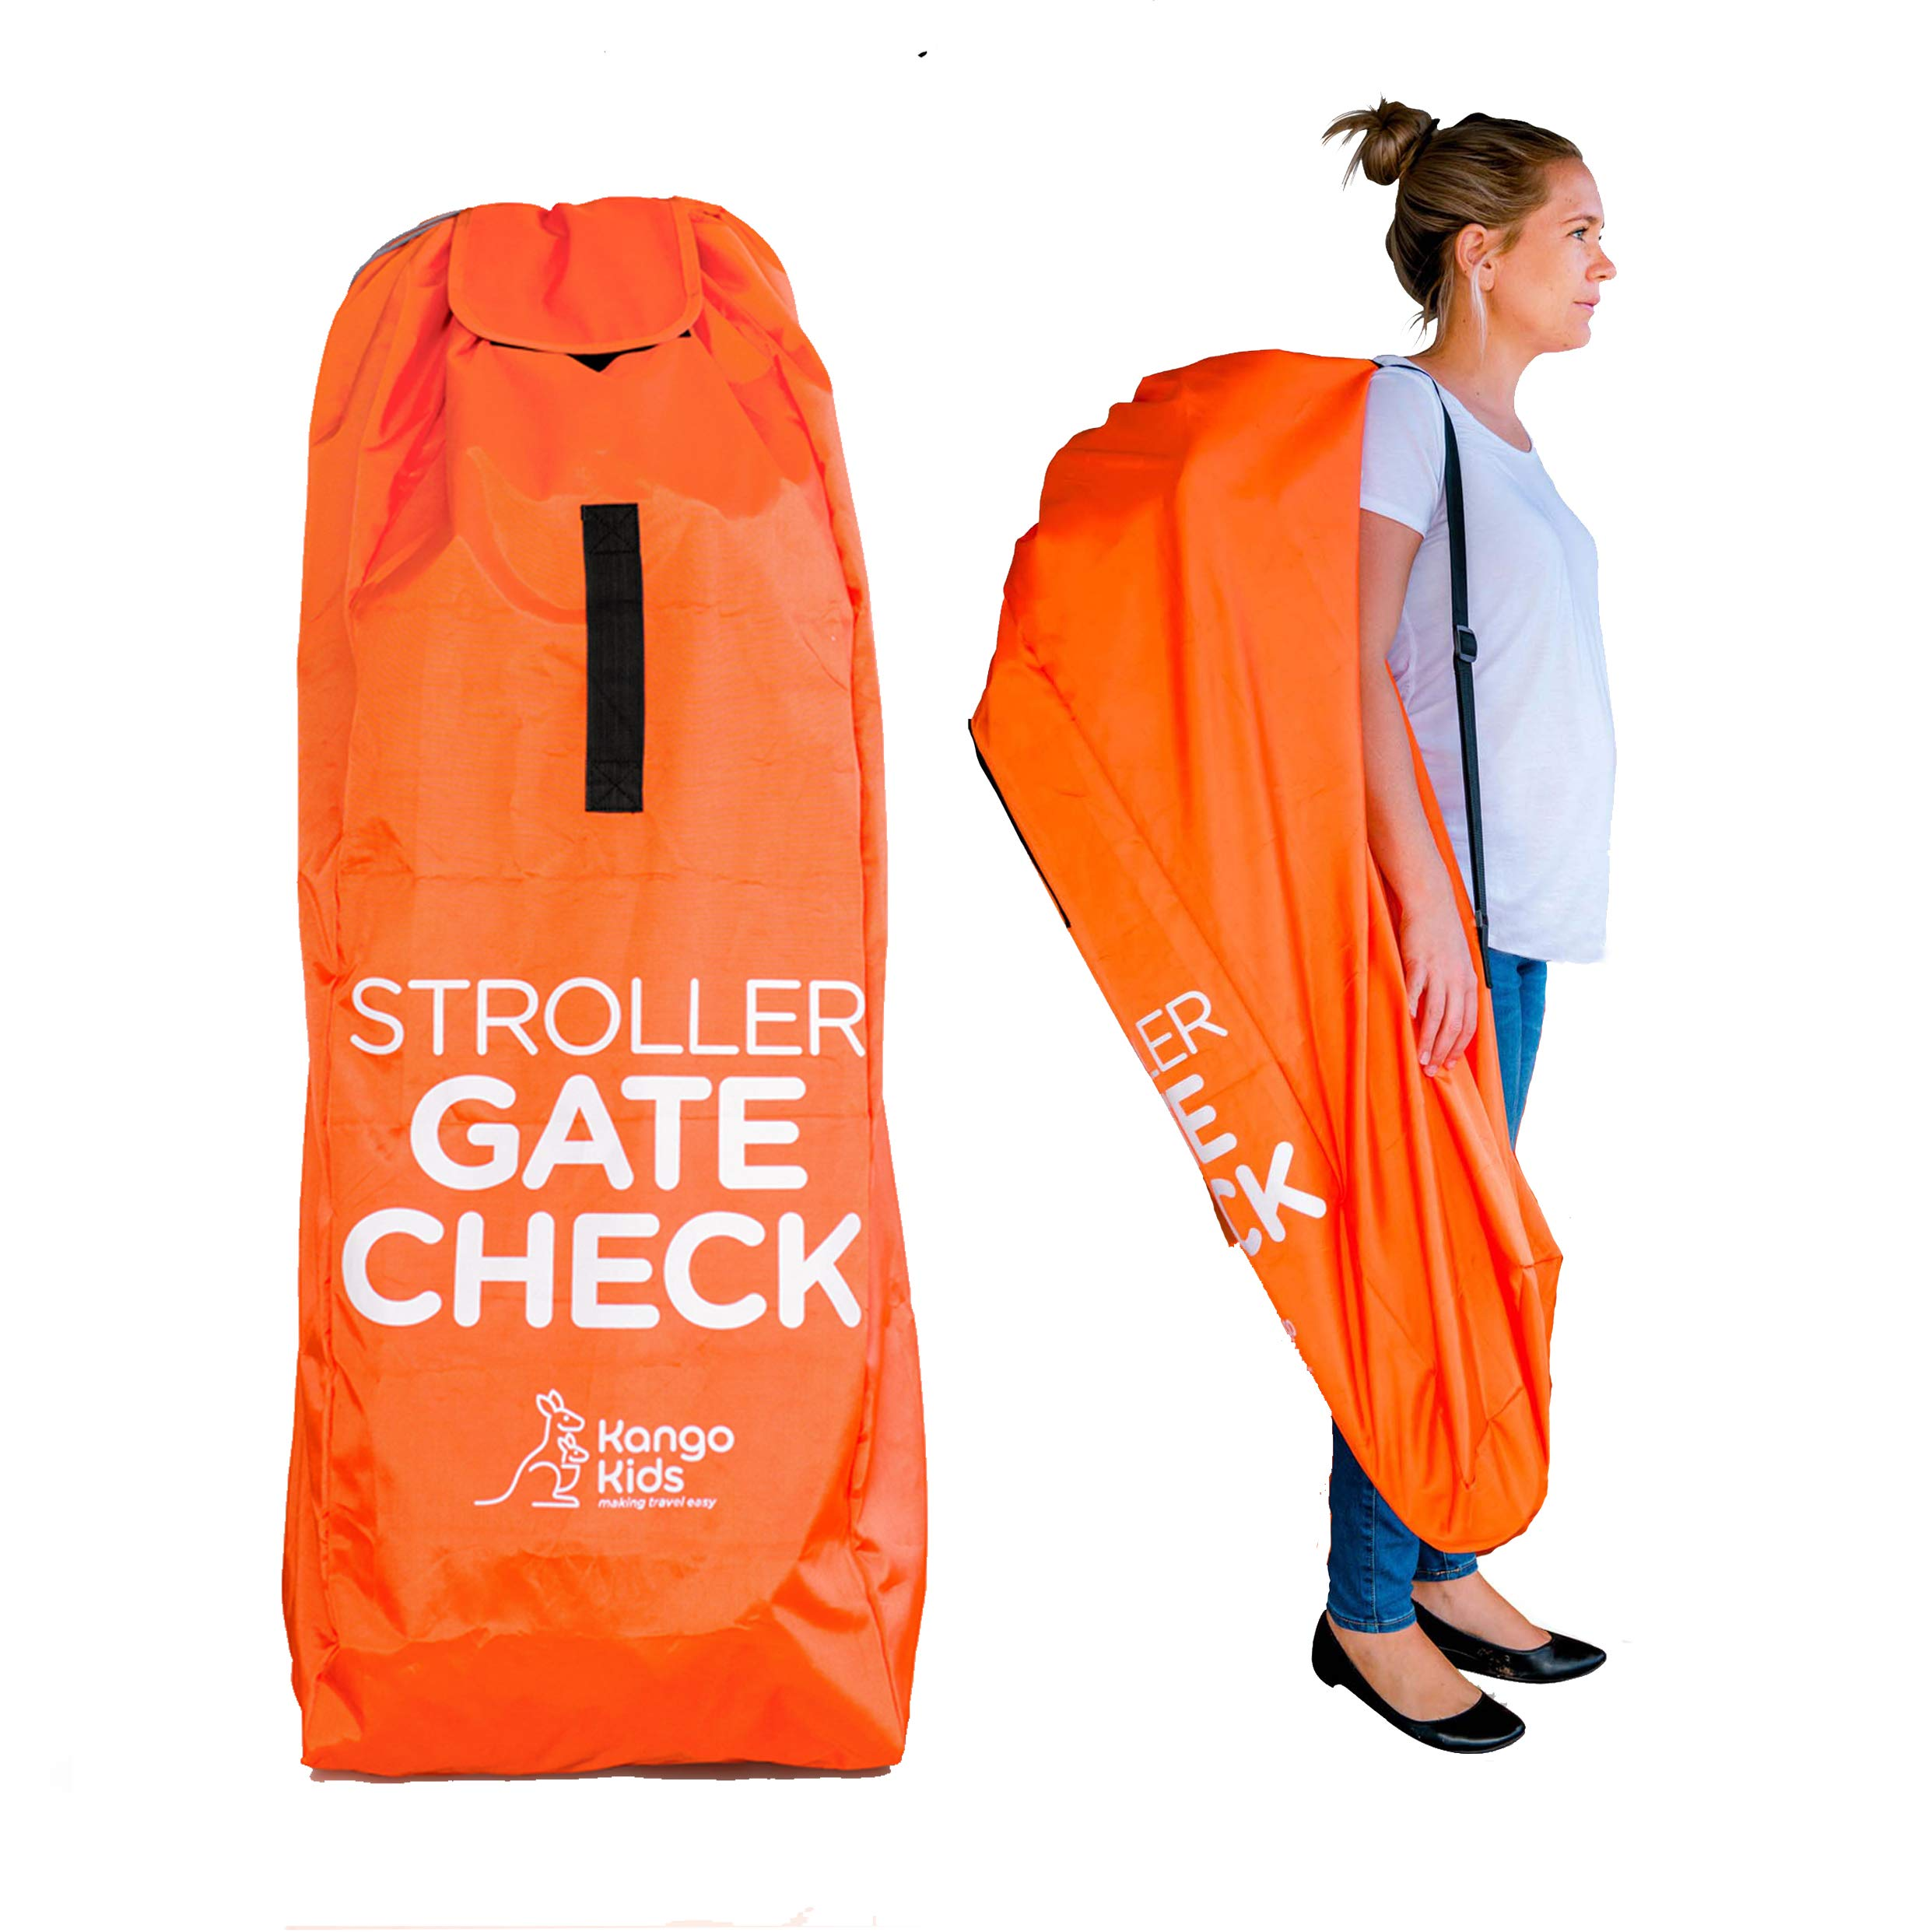 Umbrella Stroller Travel Bag - Baby Gate Check Bags for Air Travel. Protect Your Child's Strollers from Dirt & Damage. Easy to Carry. by KangoKids